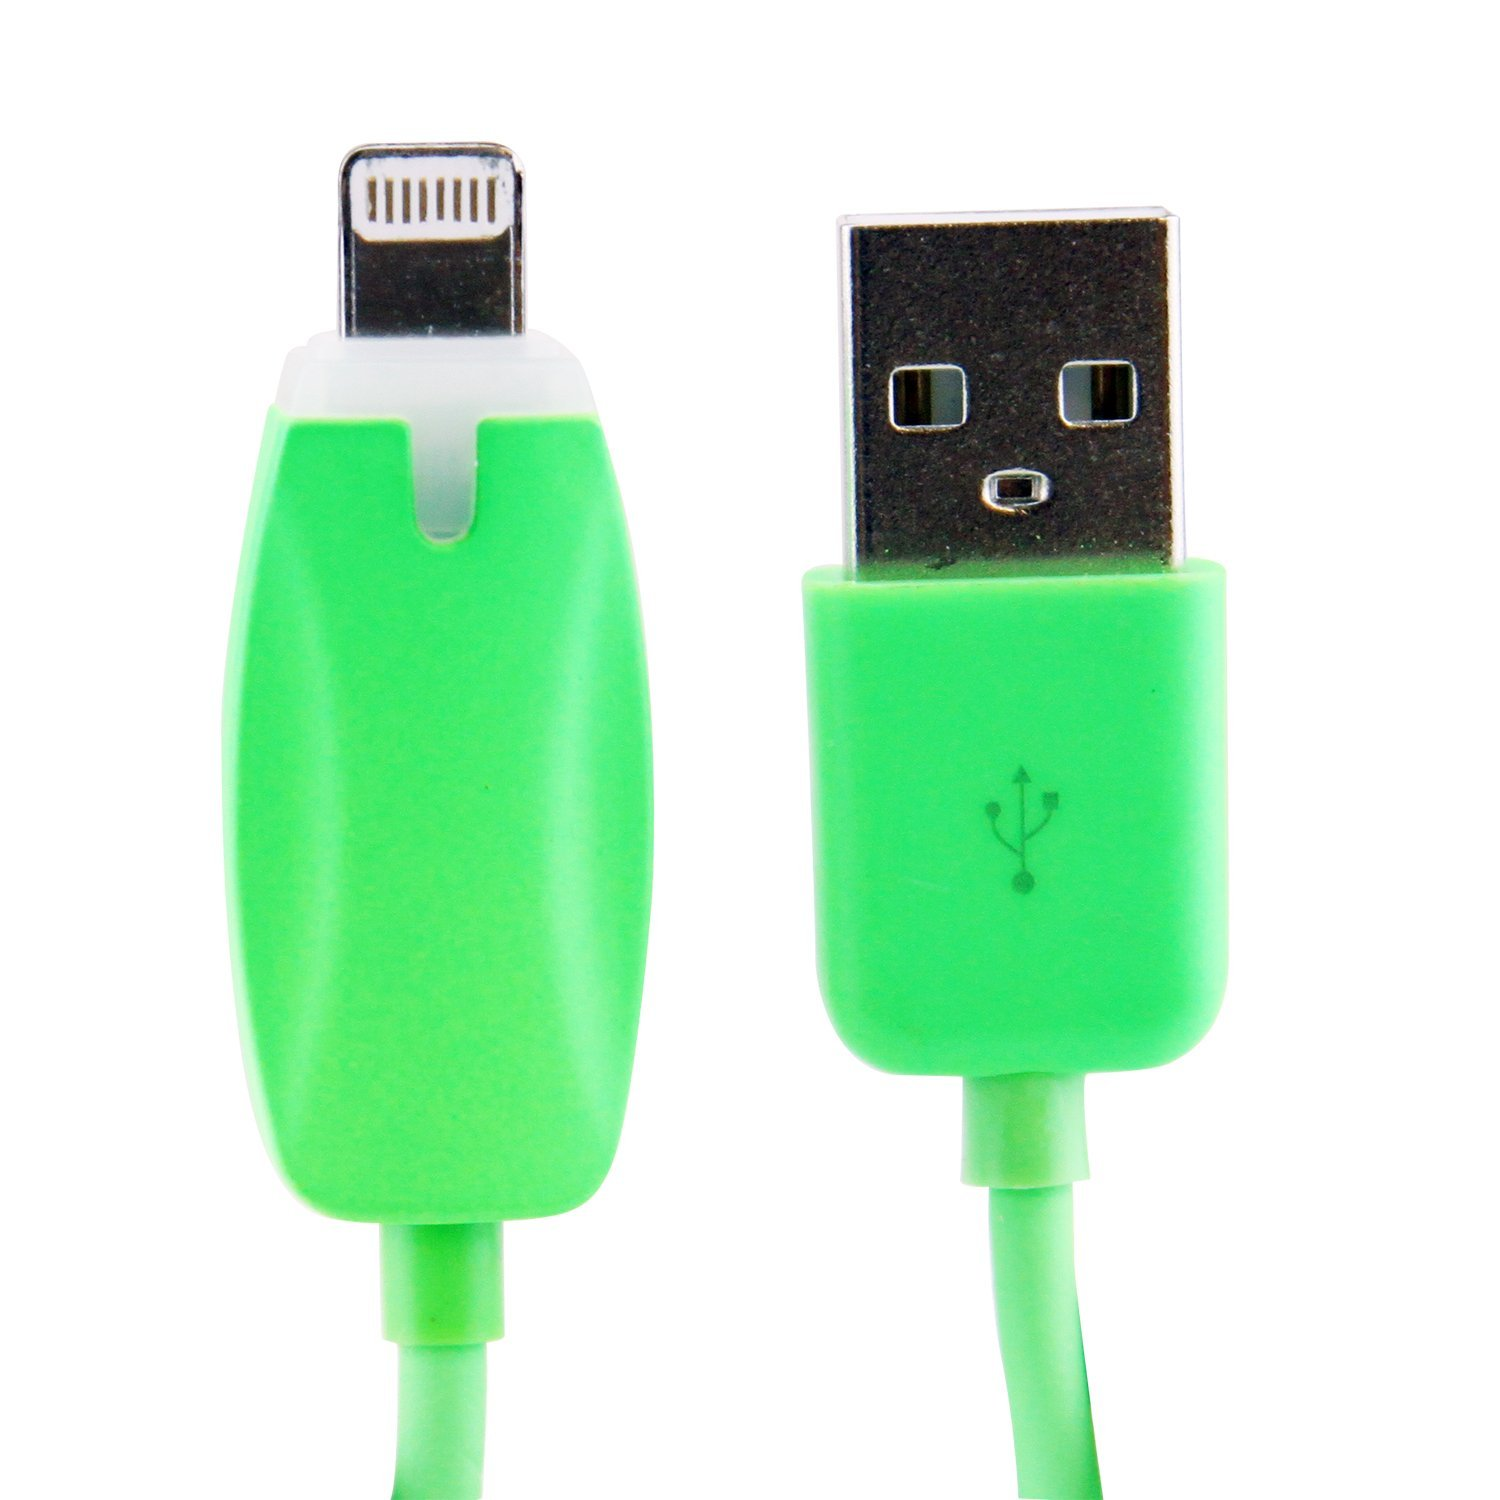 LB1 High Performance New Lightning Cable for iPhone 5S 5C 5 LED Light Charging and Data Sync 8-PIN Lightning Cable (Green)